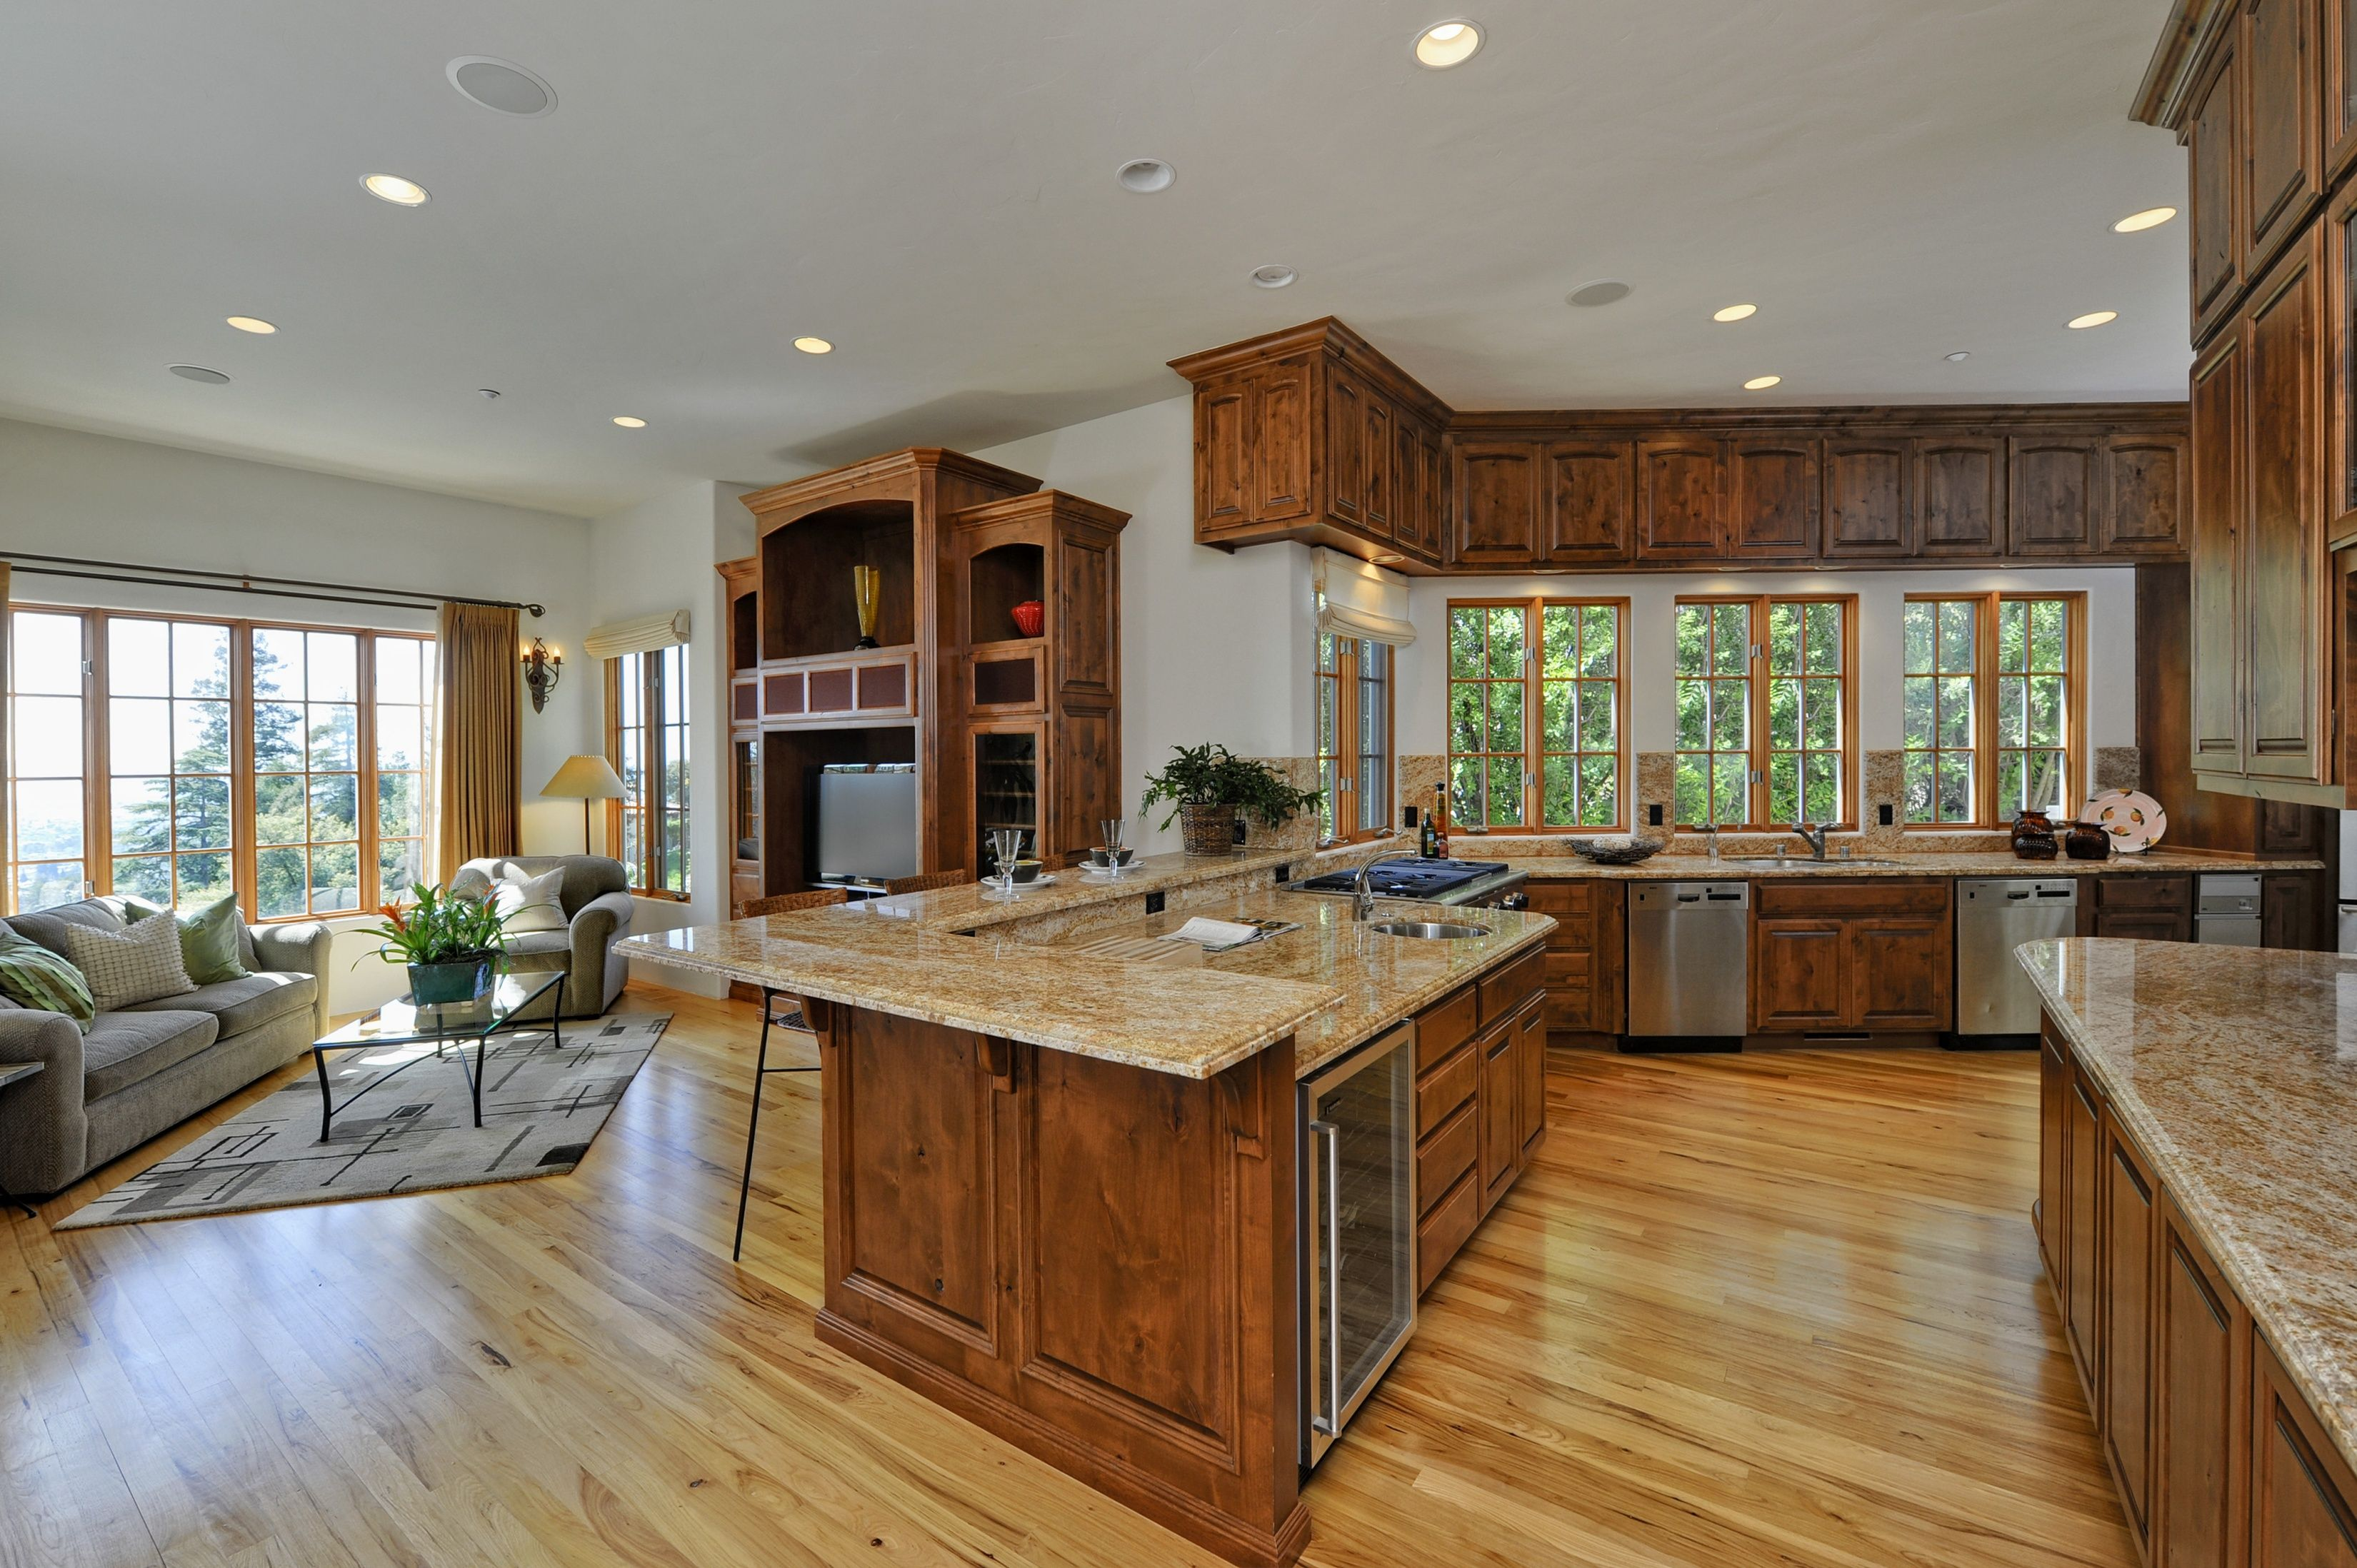 For Open Concept Kitchen Floor Imagine Imagine Living Every Day